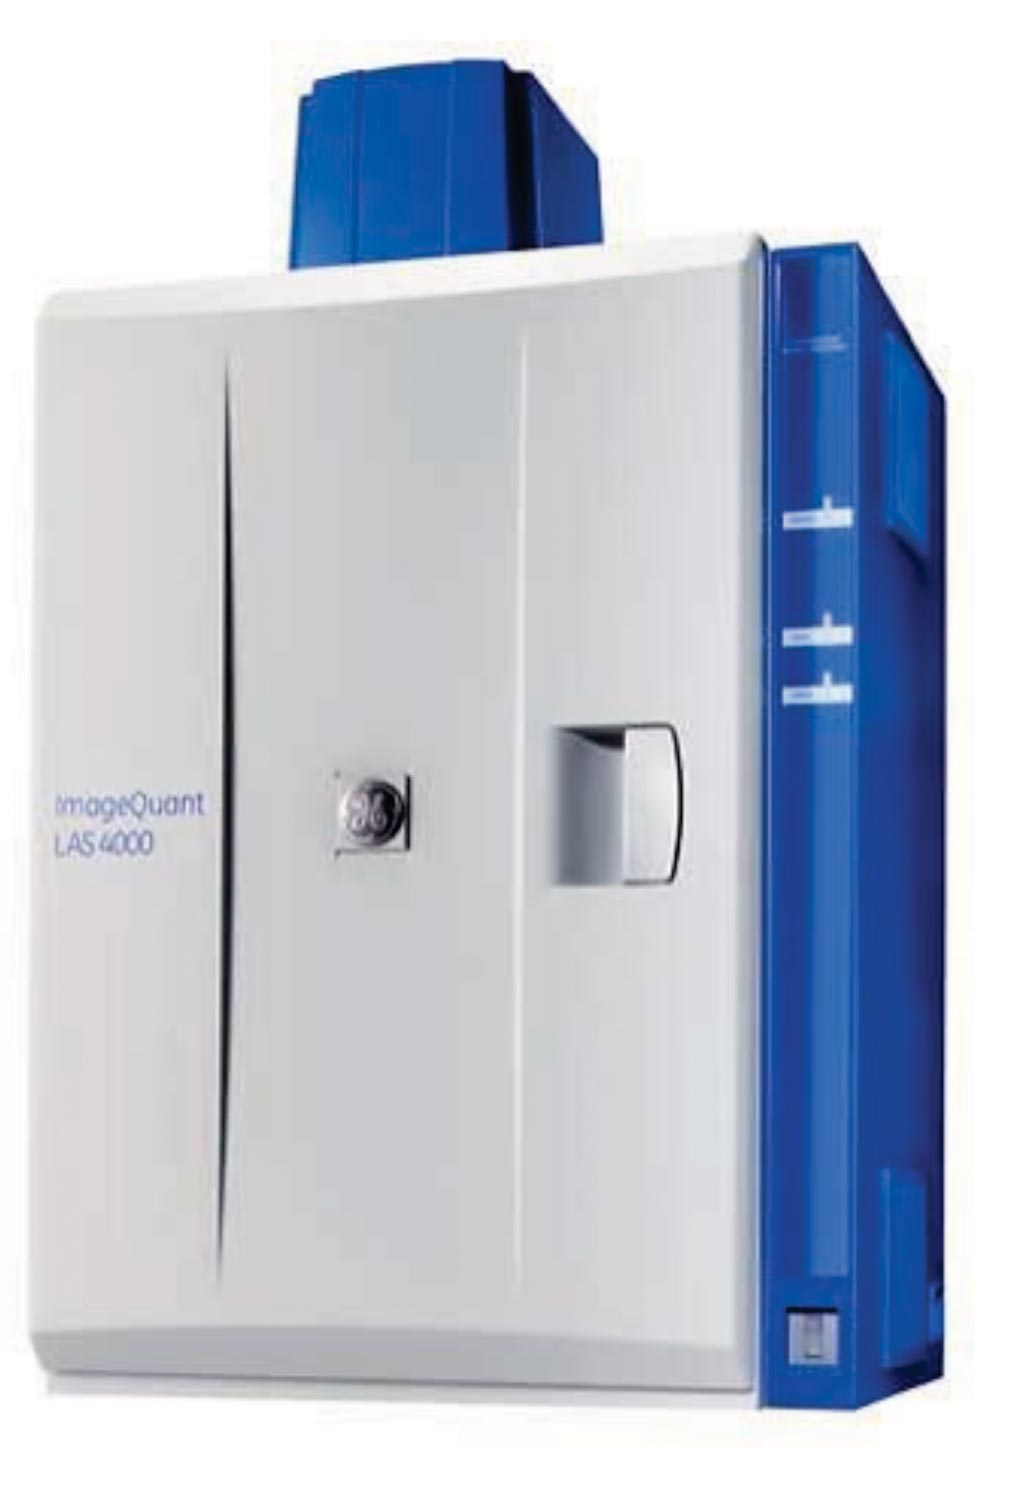 Image: The ImageQuant LAS 4000 biomolecular imager (Photo courtesy of GE Healthcare).